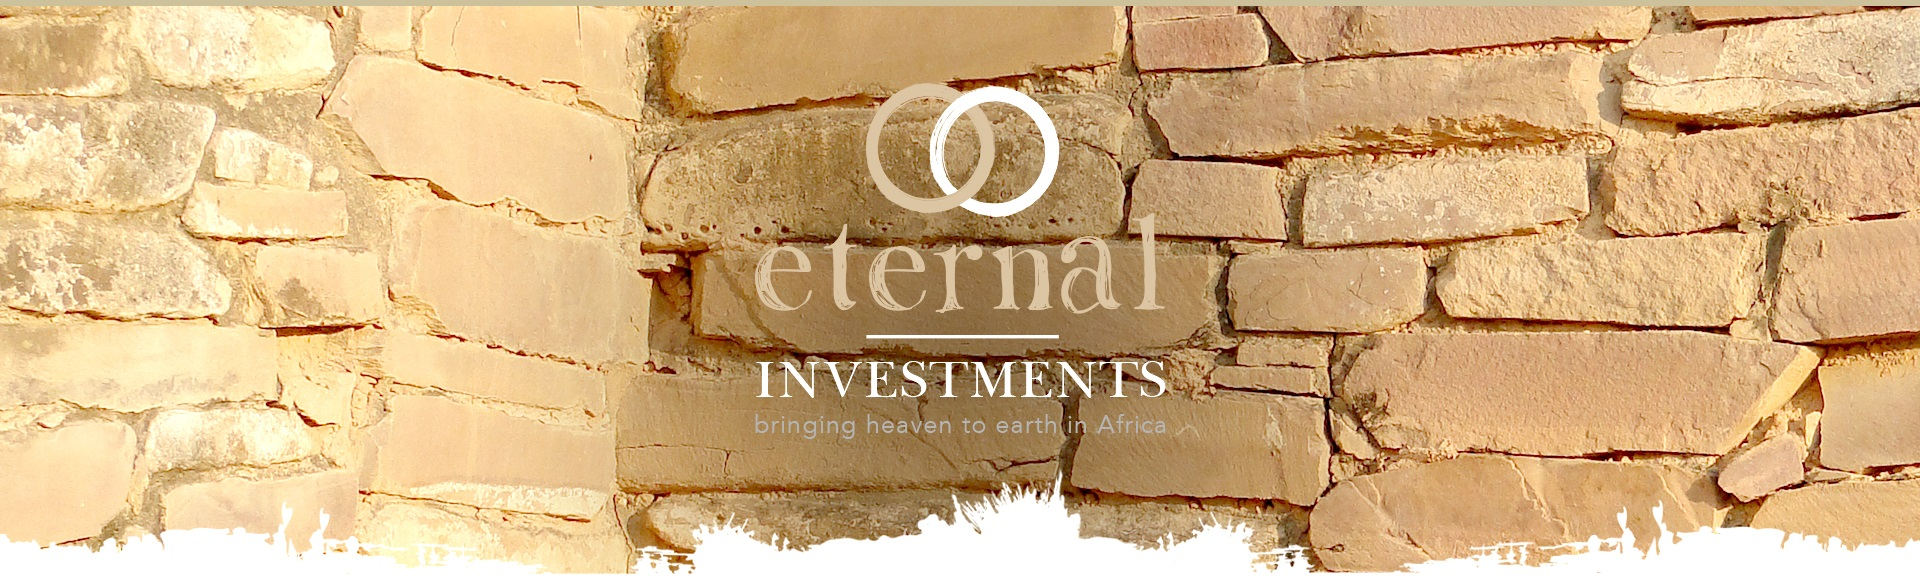 eternal-investment-about-us-banner.jpg